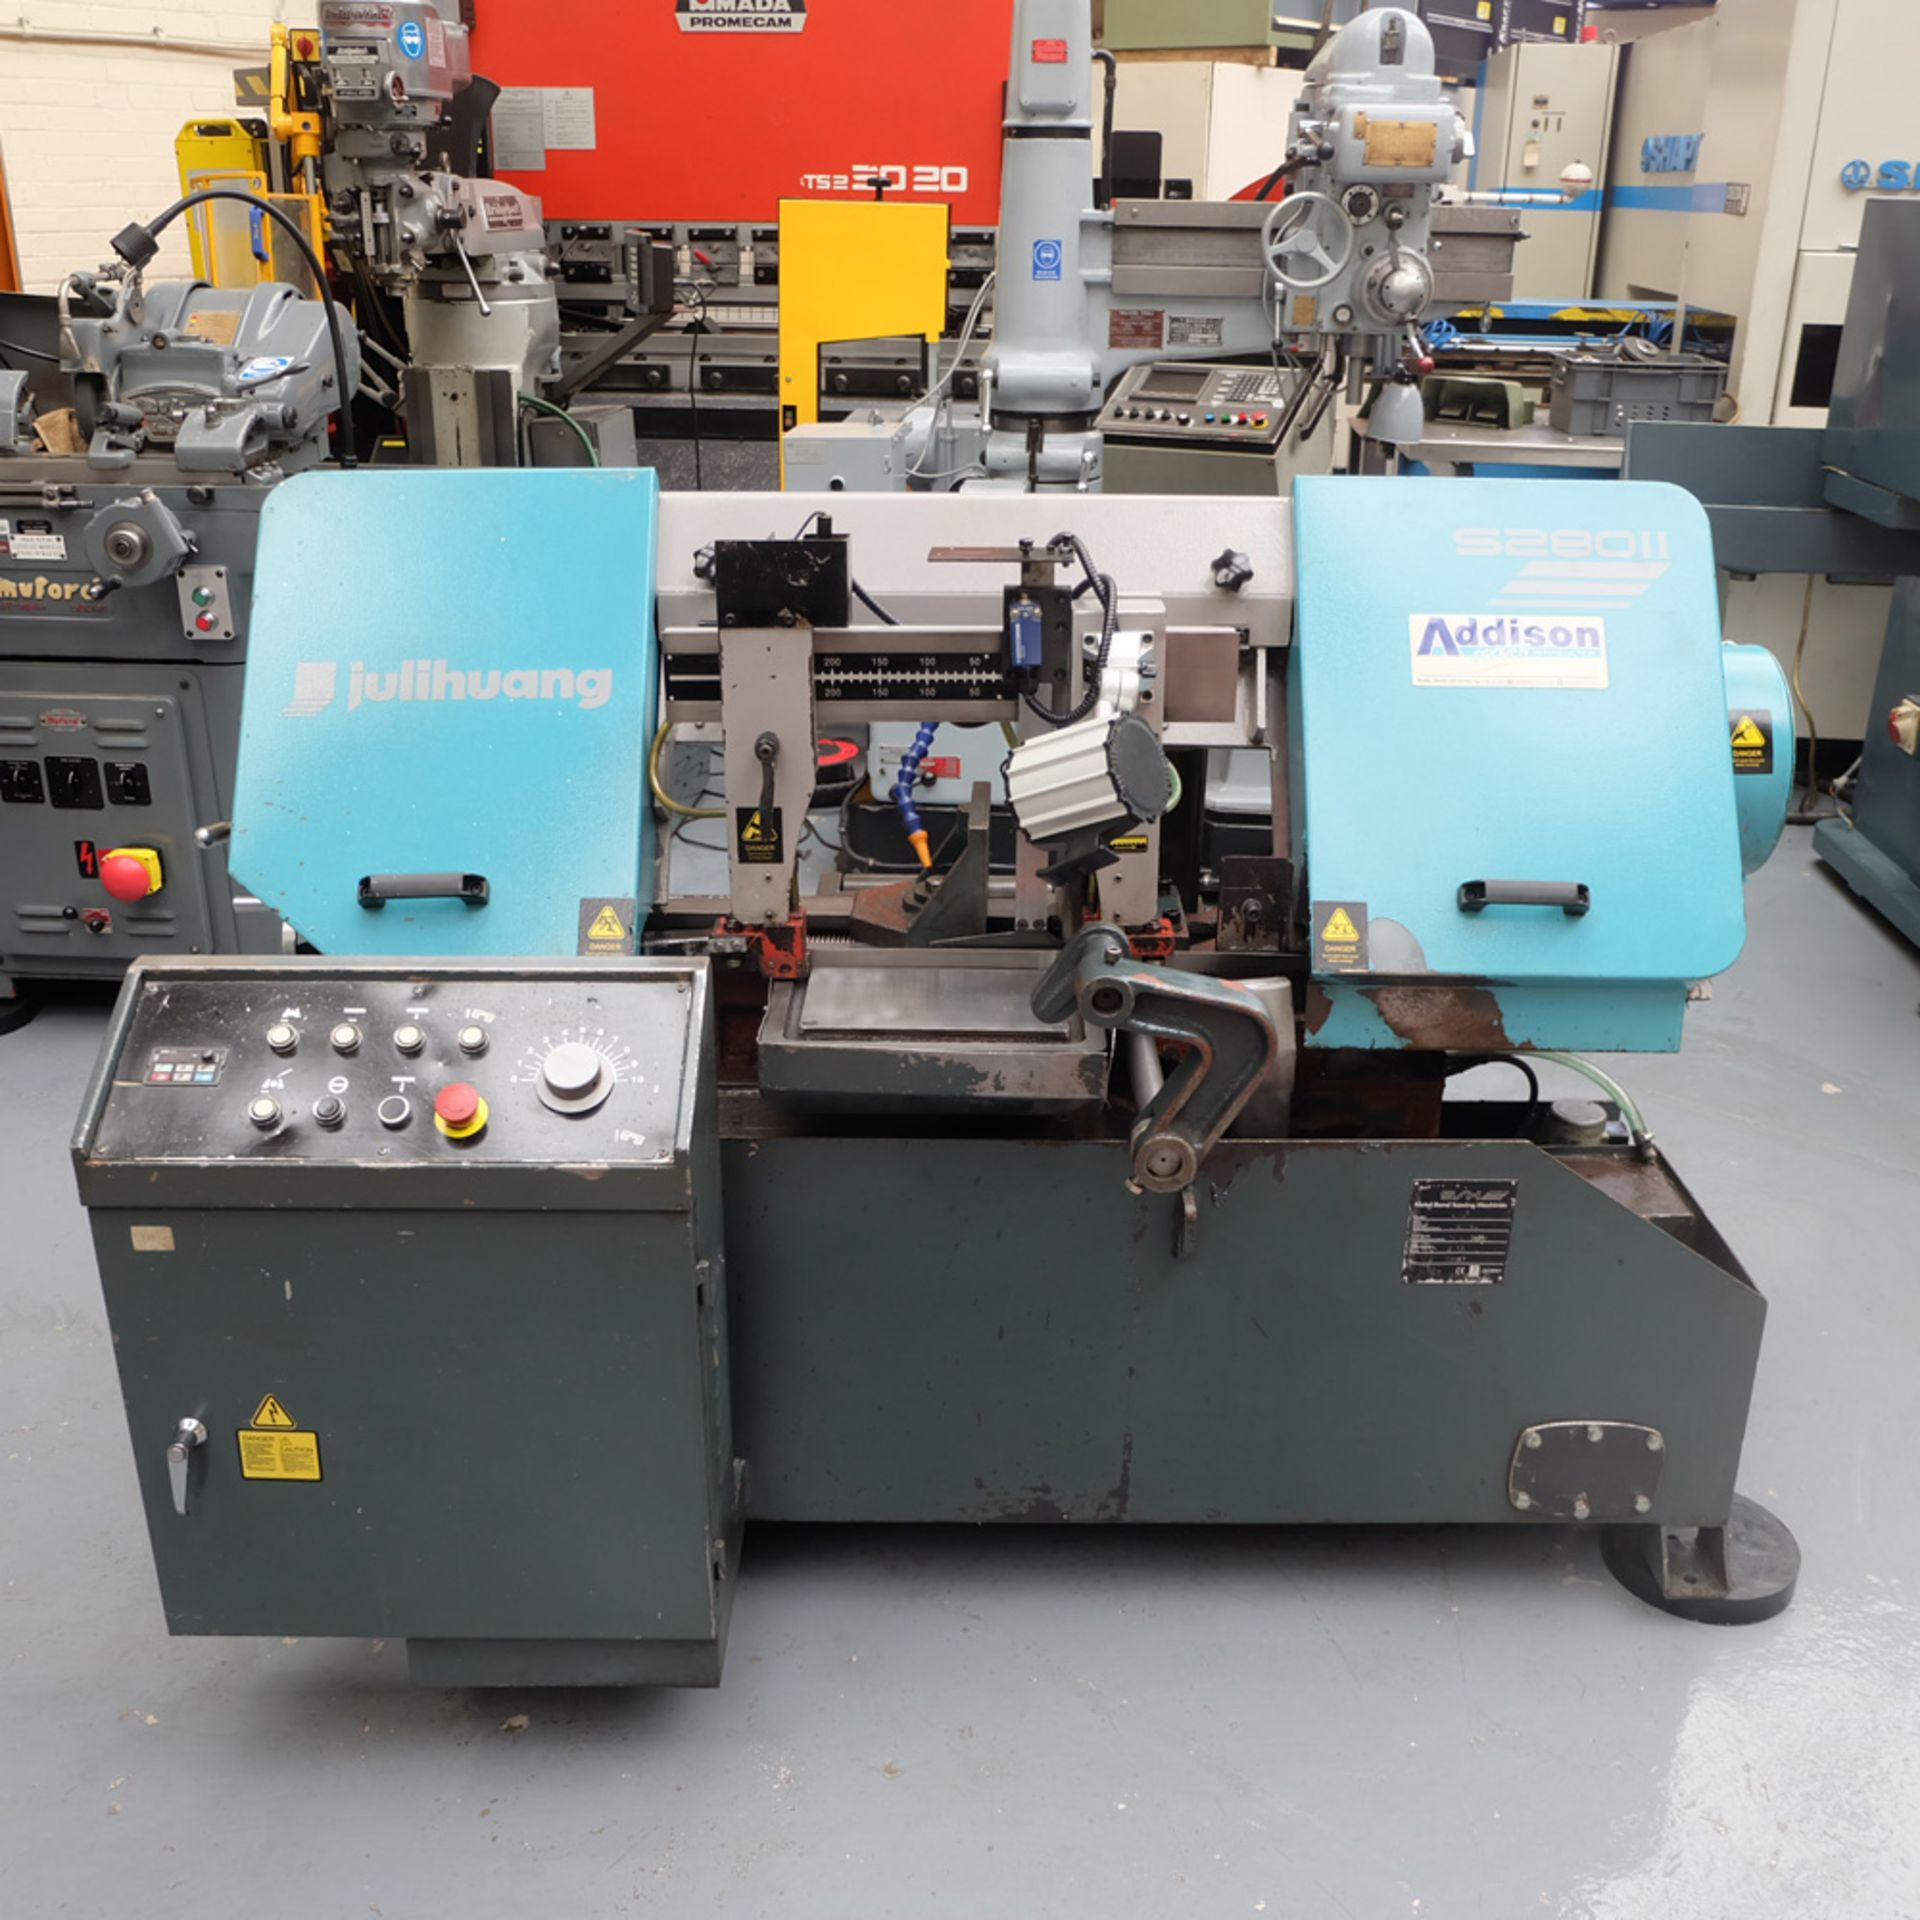 Julihuang By Addison Model S280 MKII Semi-Auto Horizontal Bandsaw.